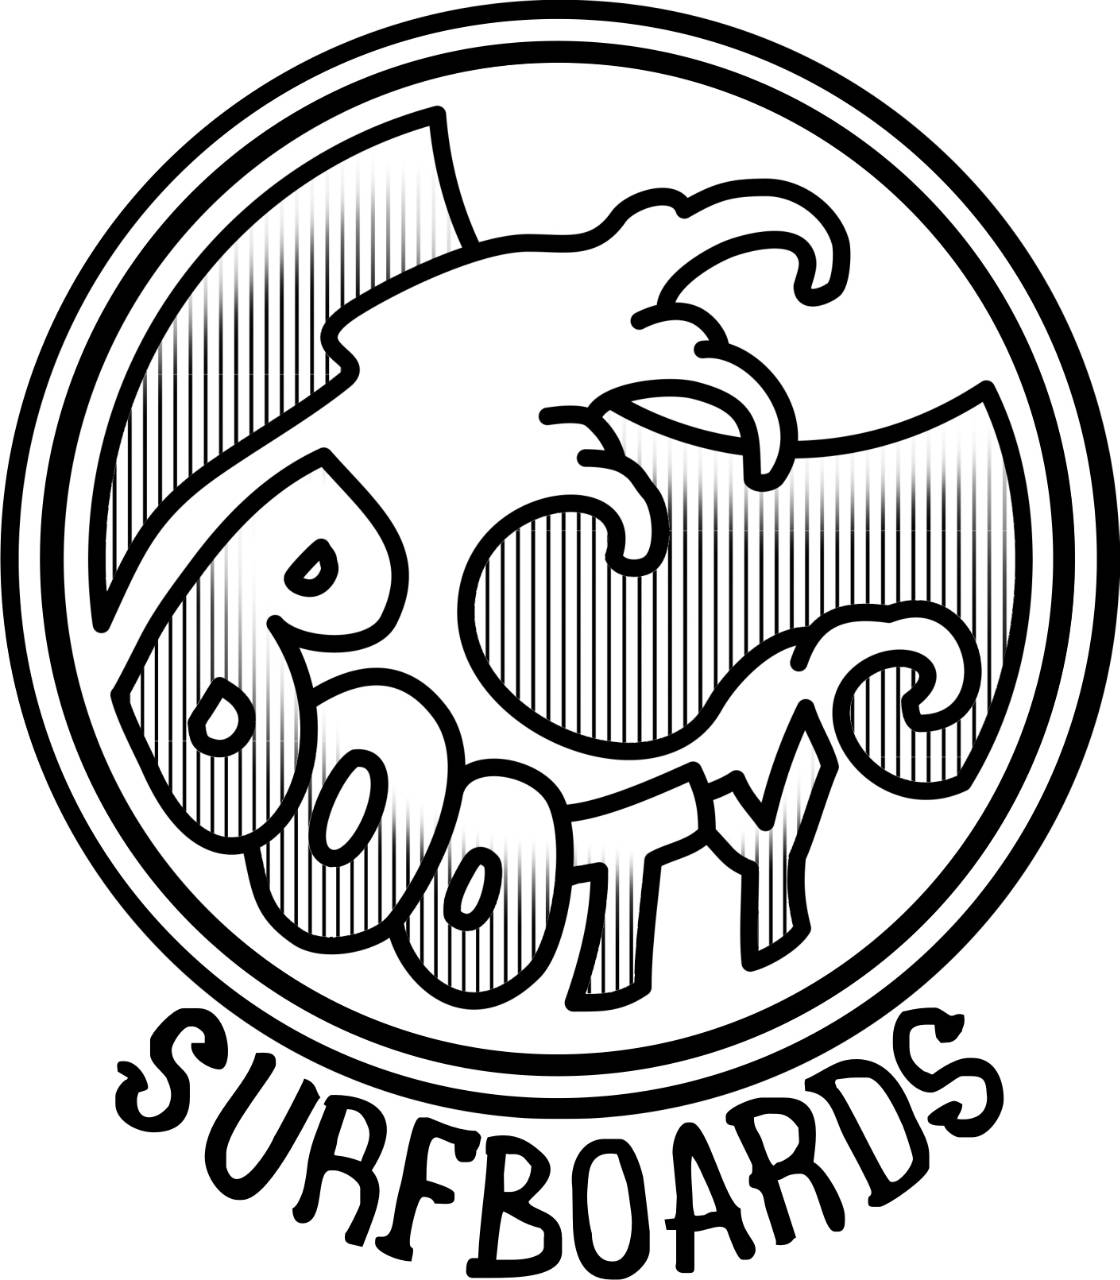 Booty surfboards